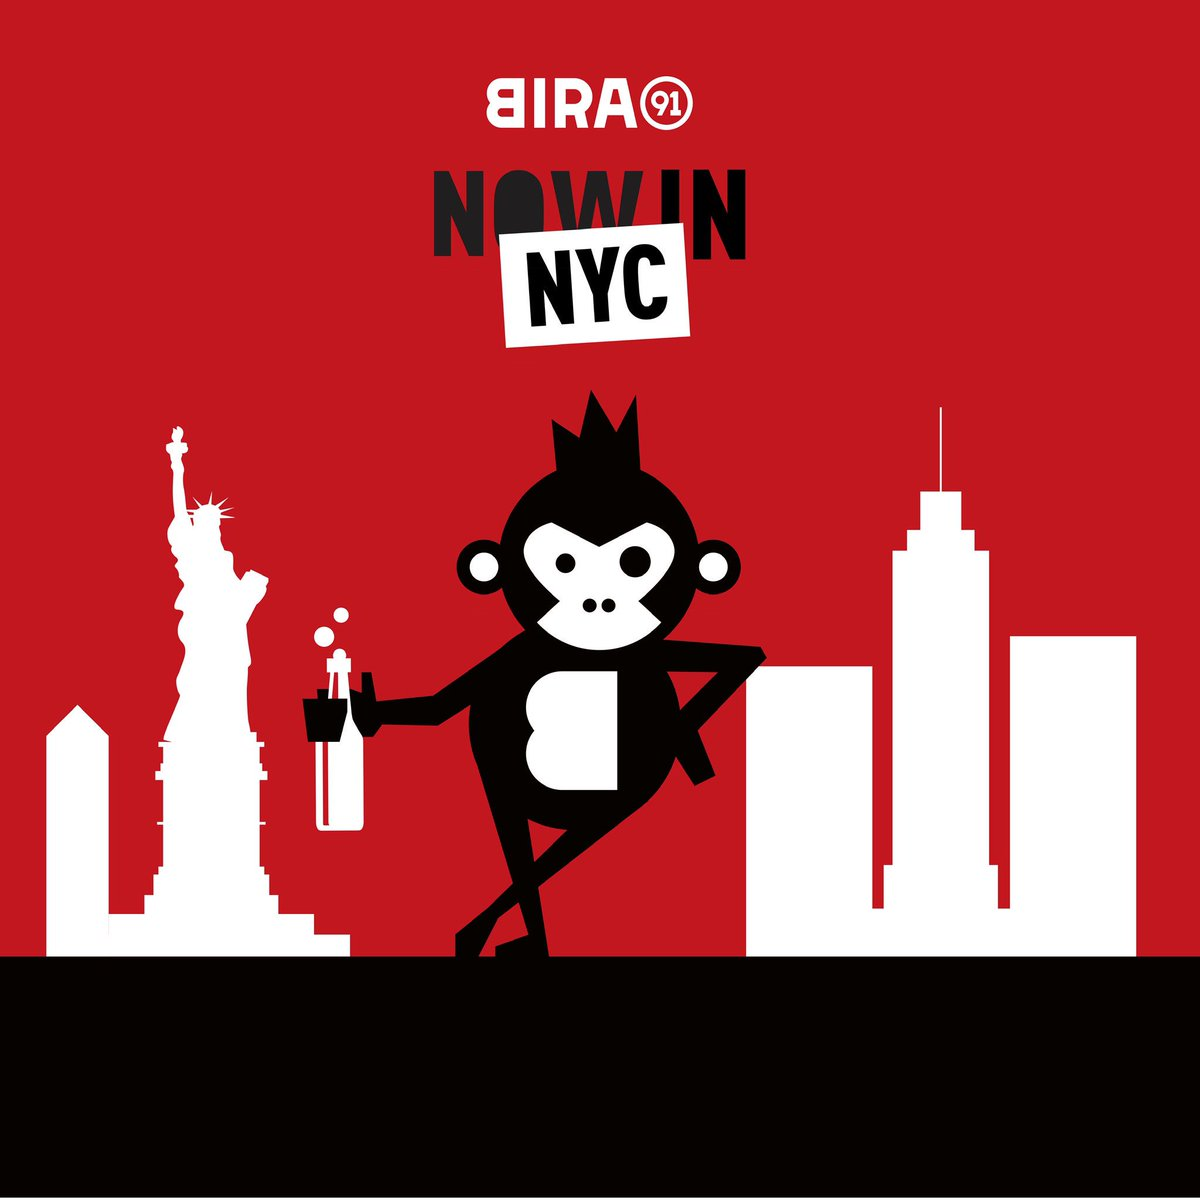 Whether it's a six-pack or a cold one on draft, hit up our product locator below to find Bira 91 one nearest you! #MakePlay  http://bira91us.com